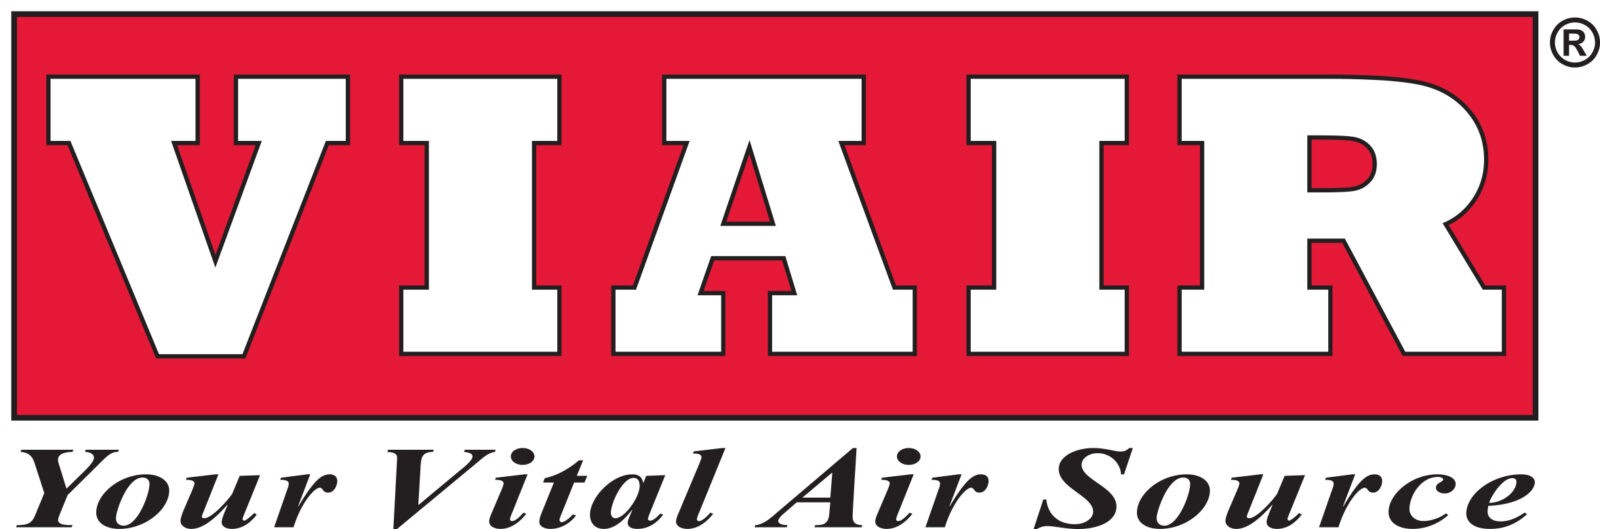 Viair_Logo_Red-Blk_Text